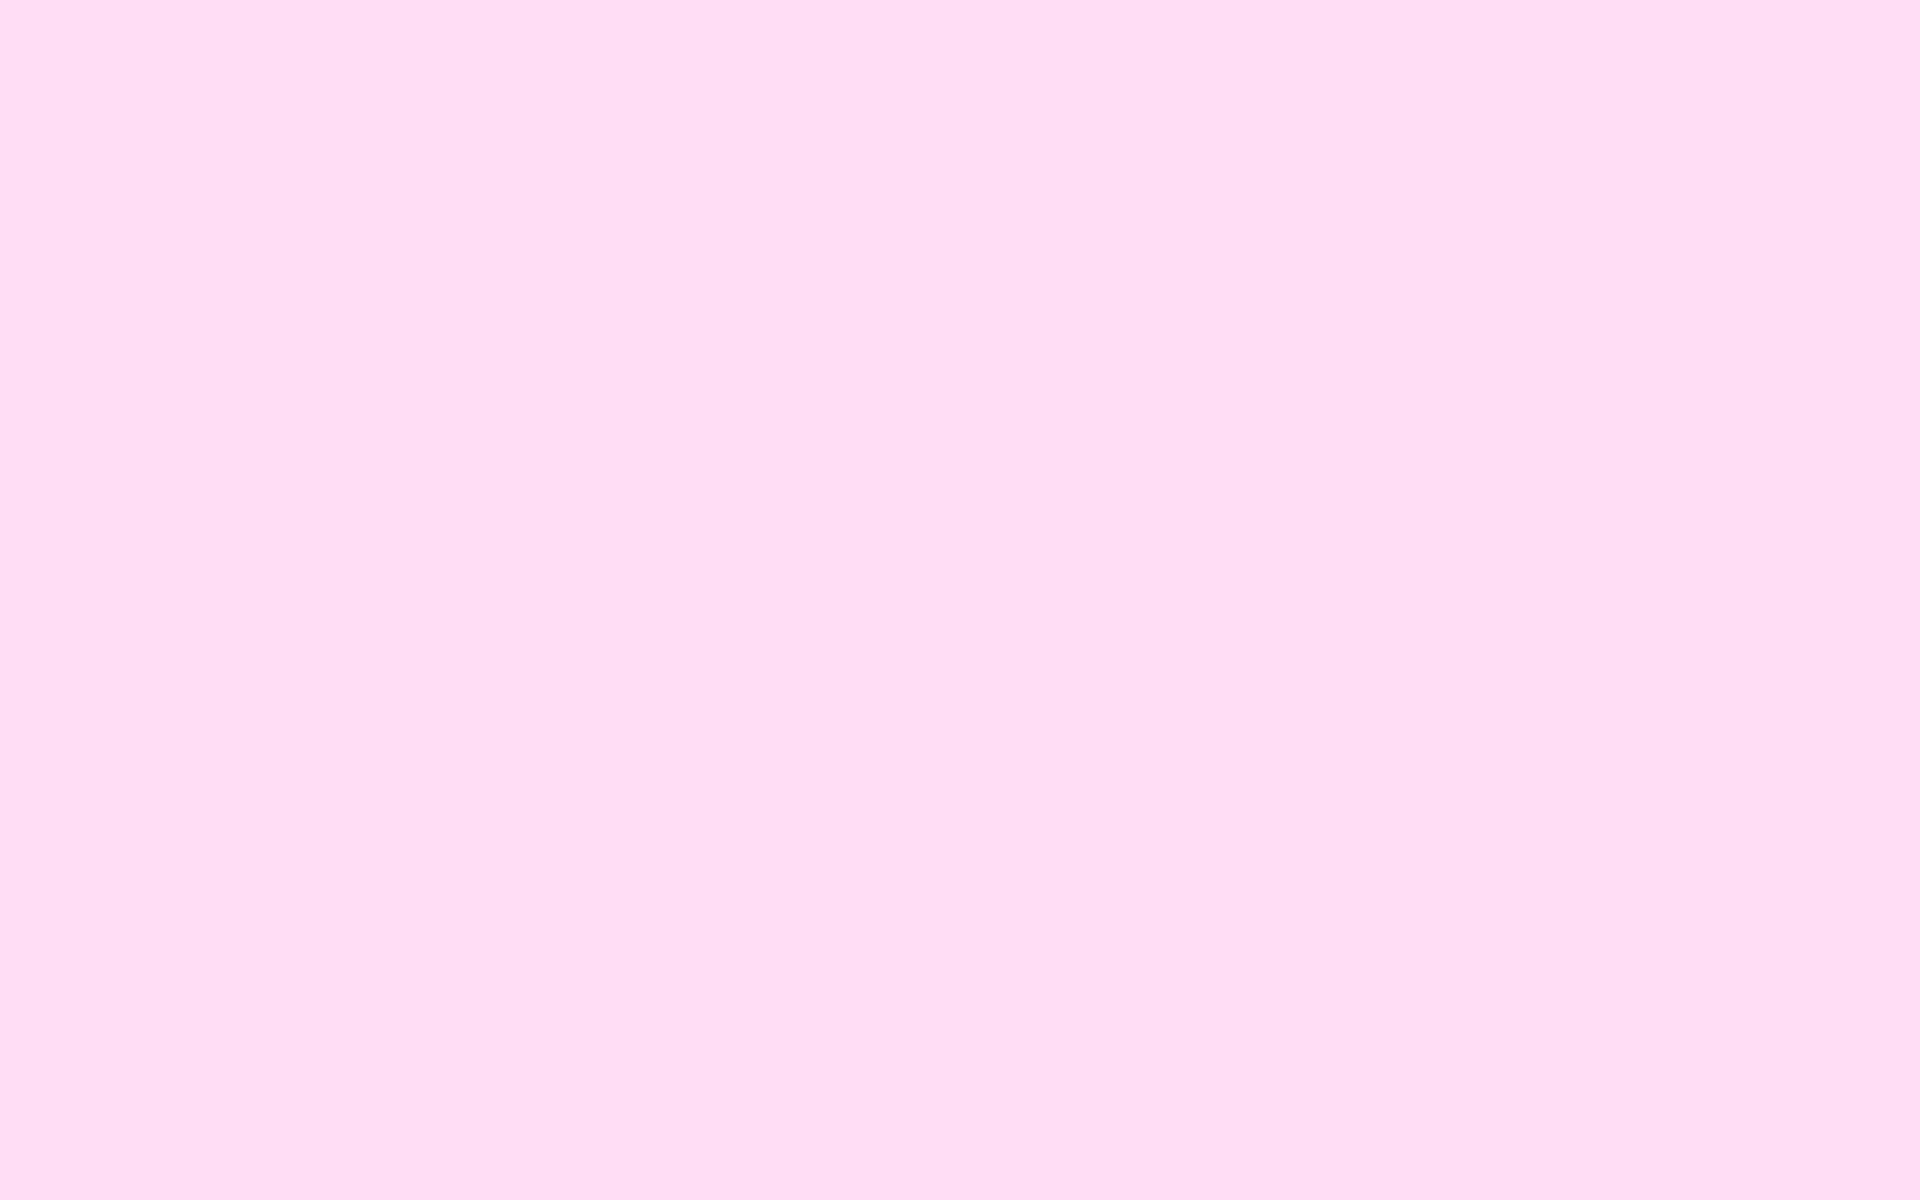 1920x1200 Pink Lace Solid Color Background